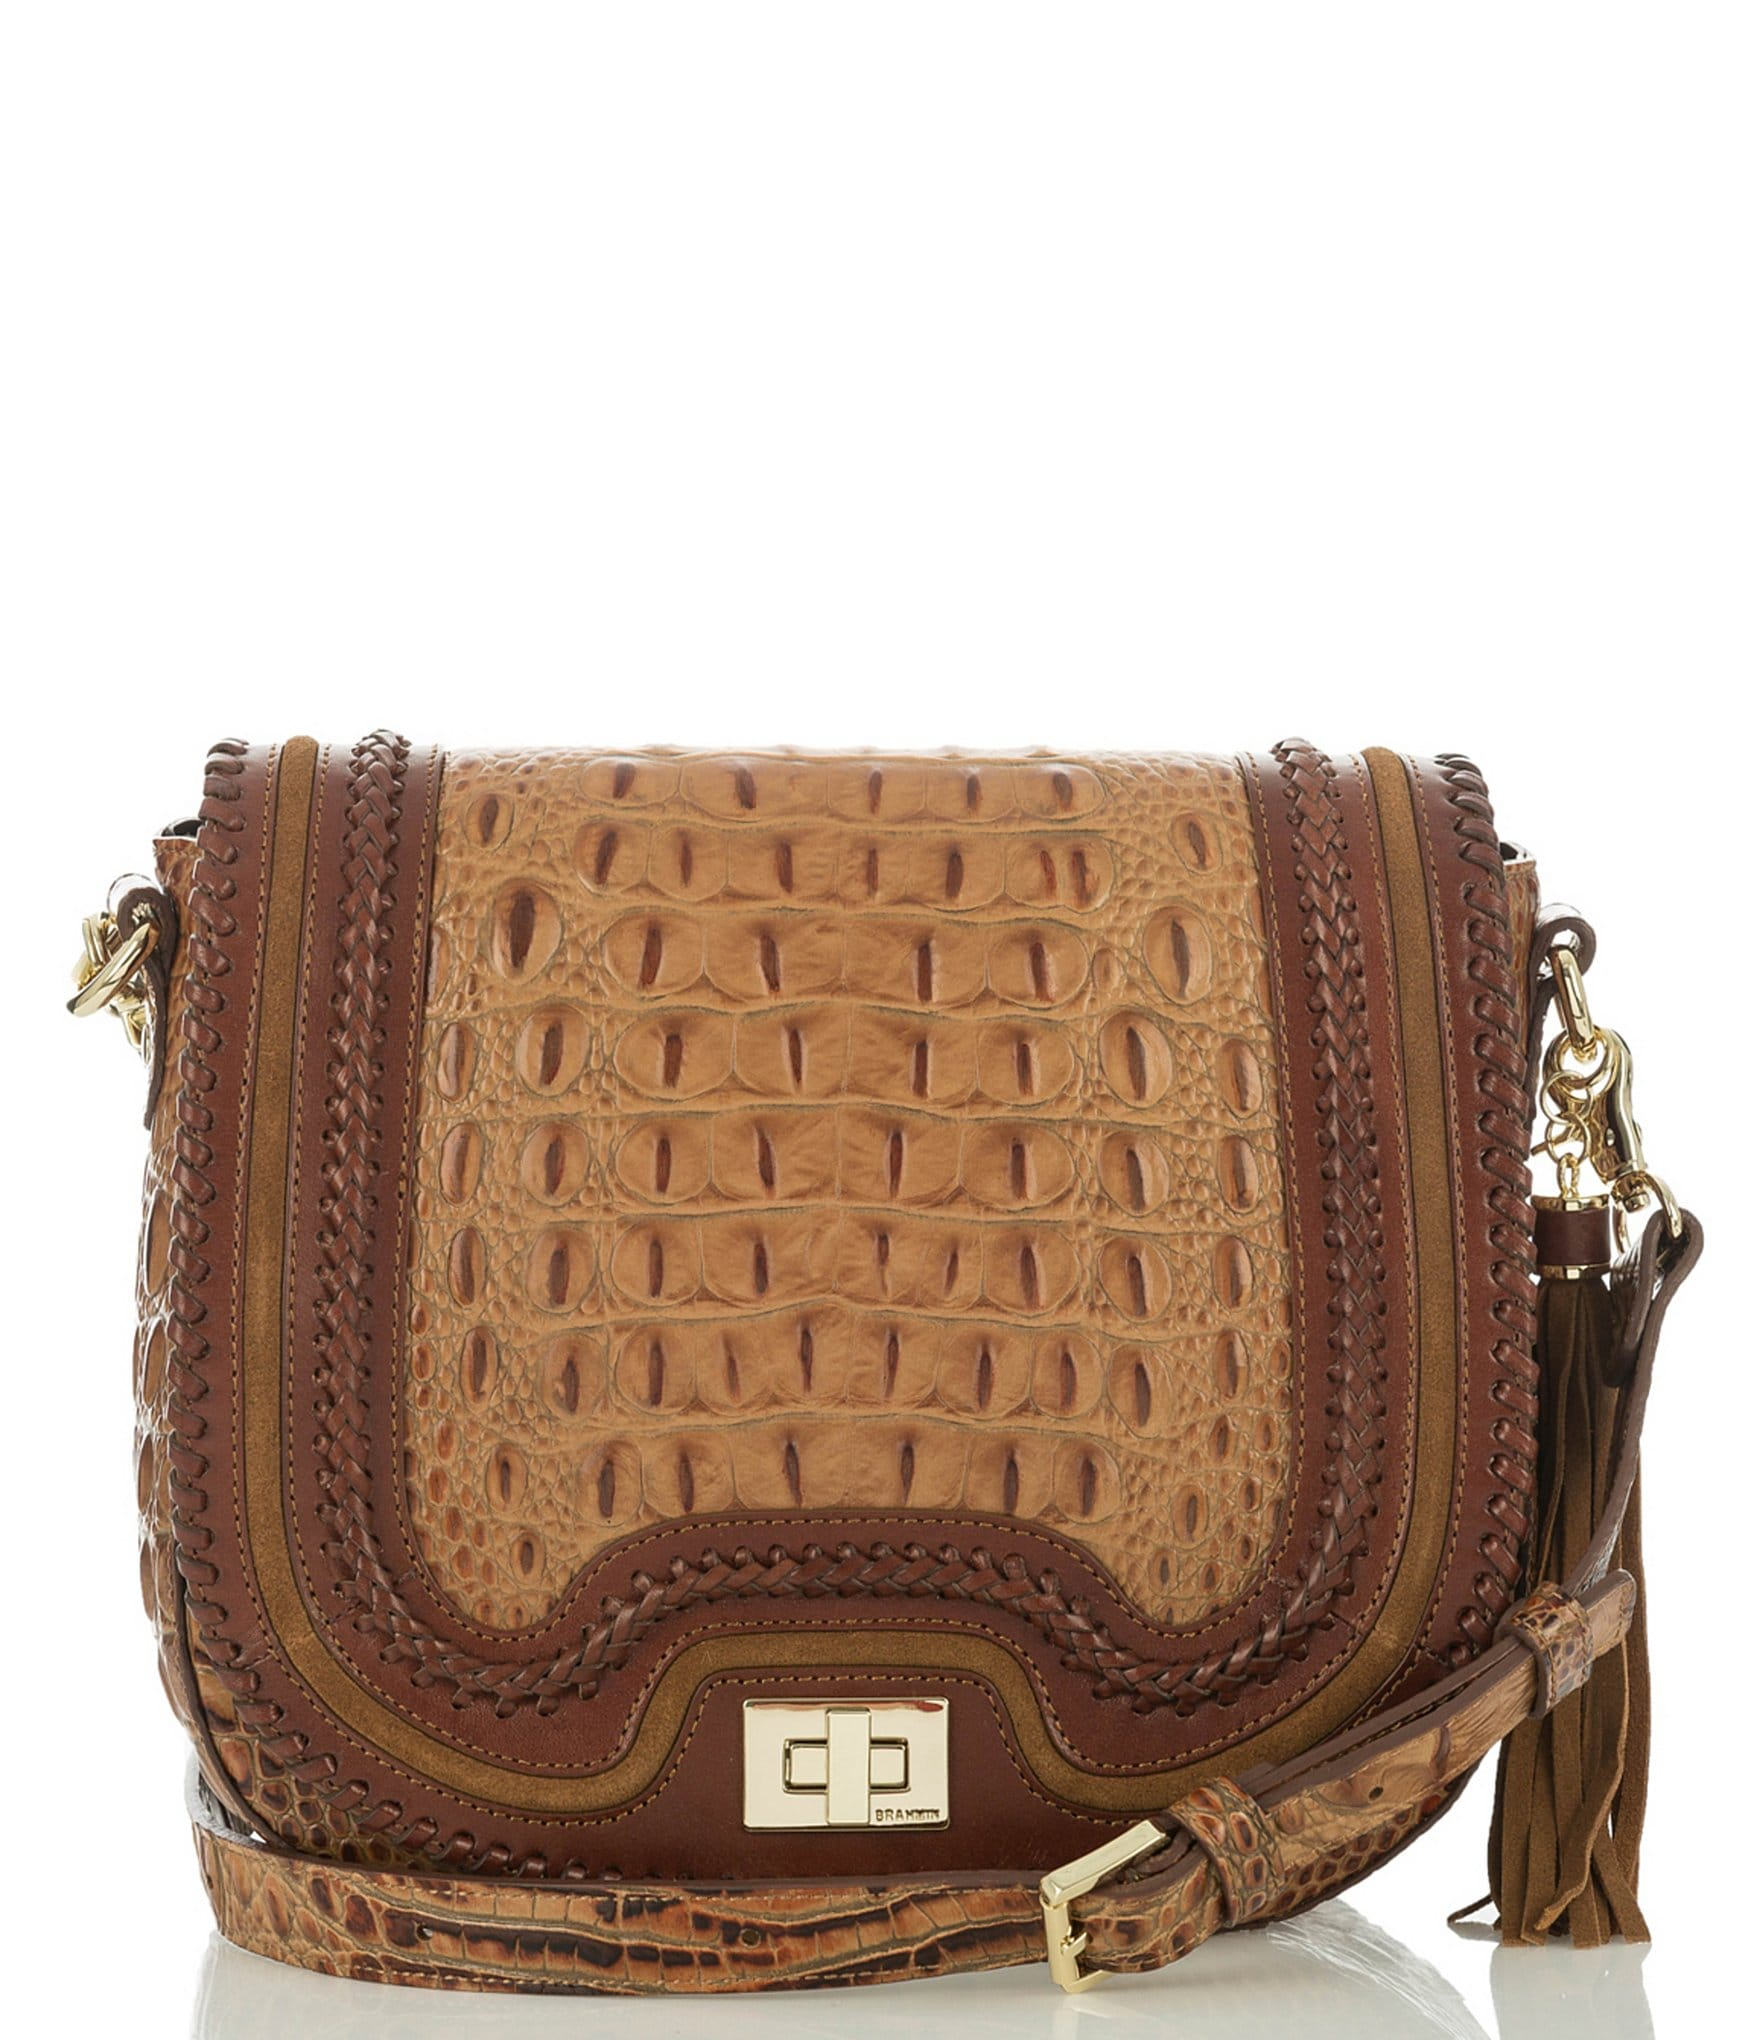 brahmin handbags, purses & wallets | dillards, Wohnzimmer dekoo